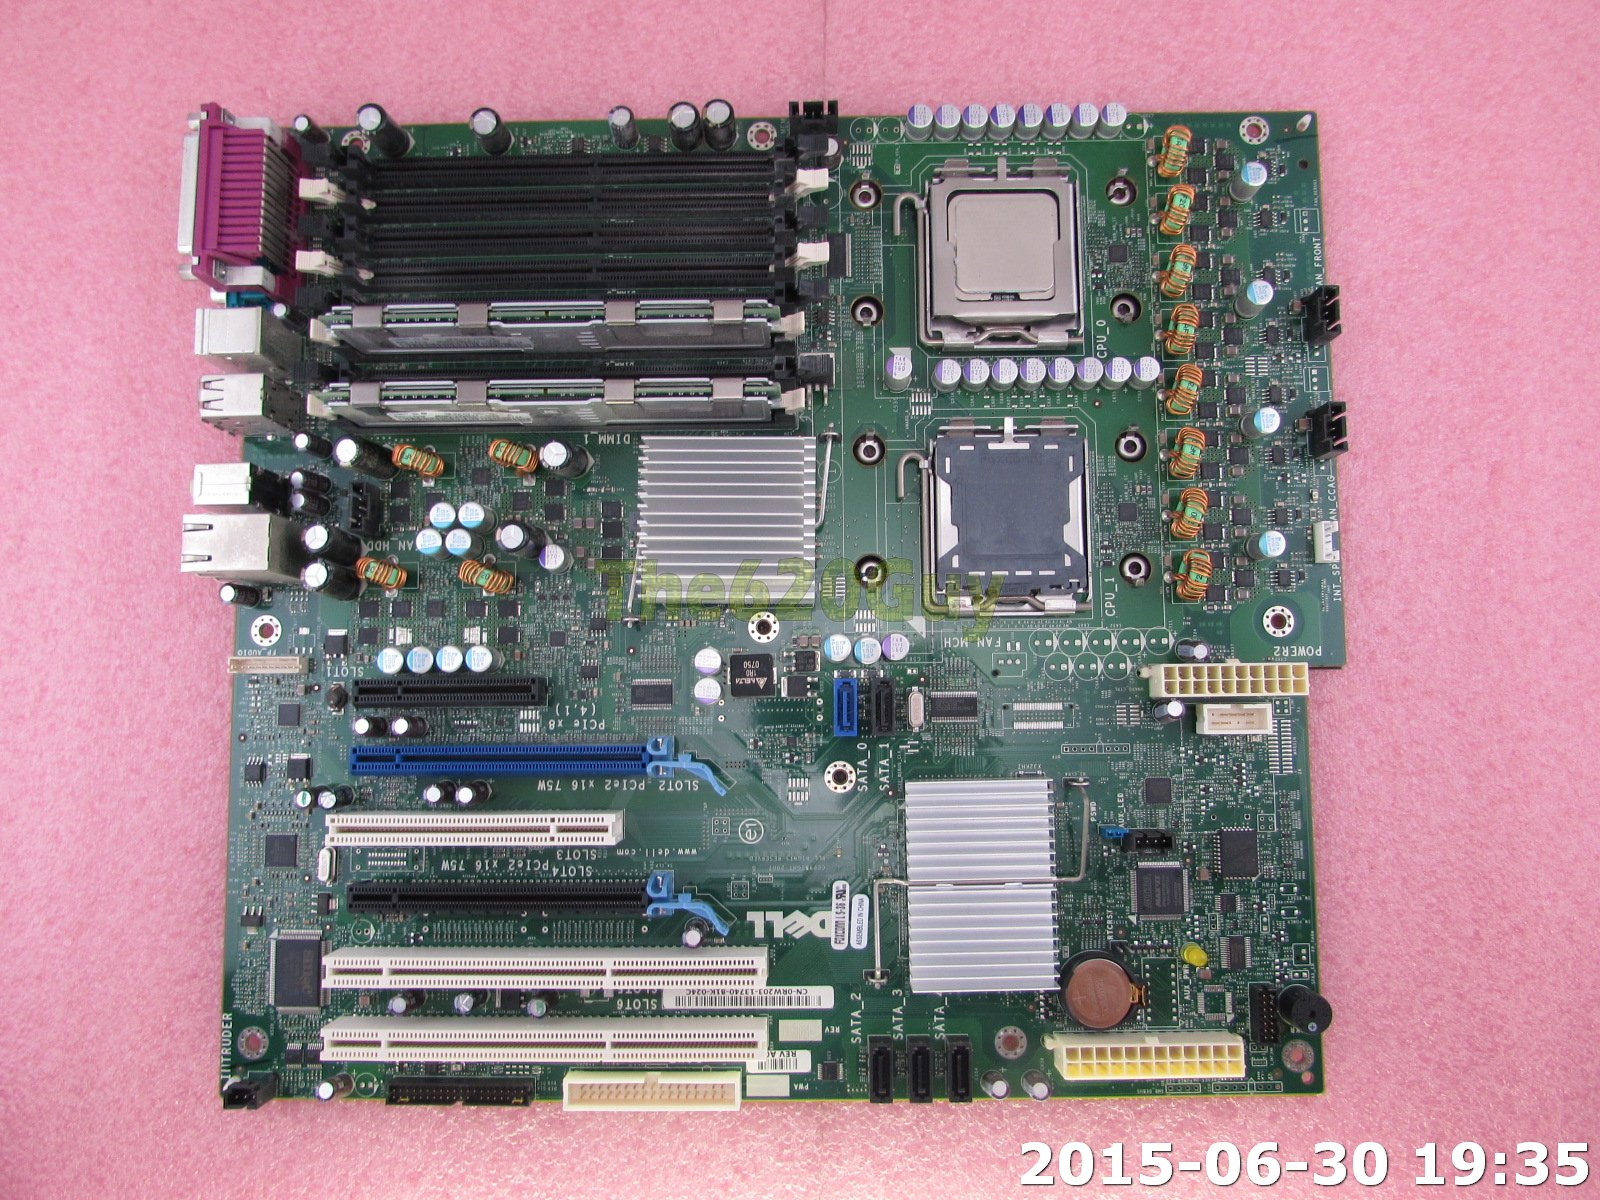 foxconn ls 36 motherboard diagram telephone 110 block wiring dell prescision t5400 rw203 xeon 2 5ghz cpu 2gb the620guy com